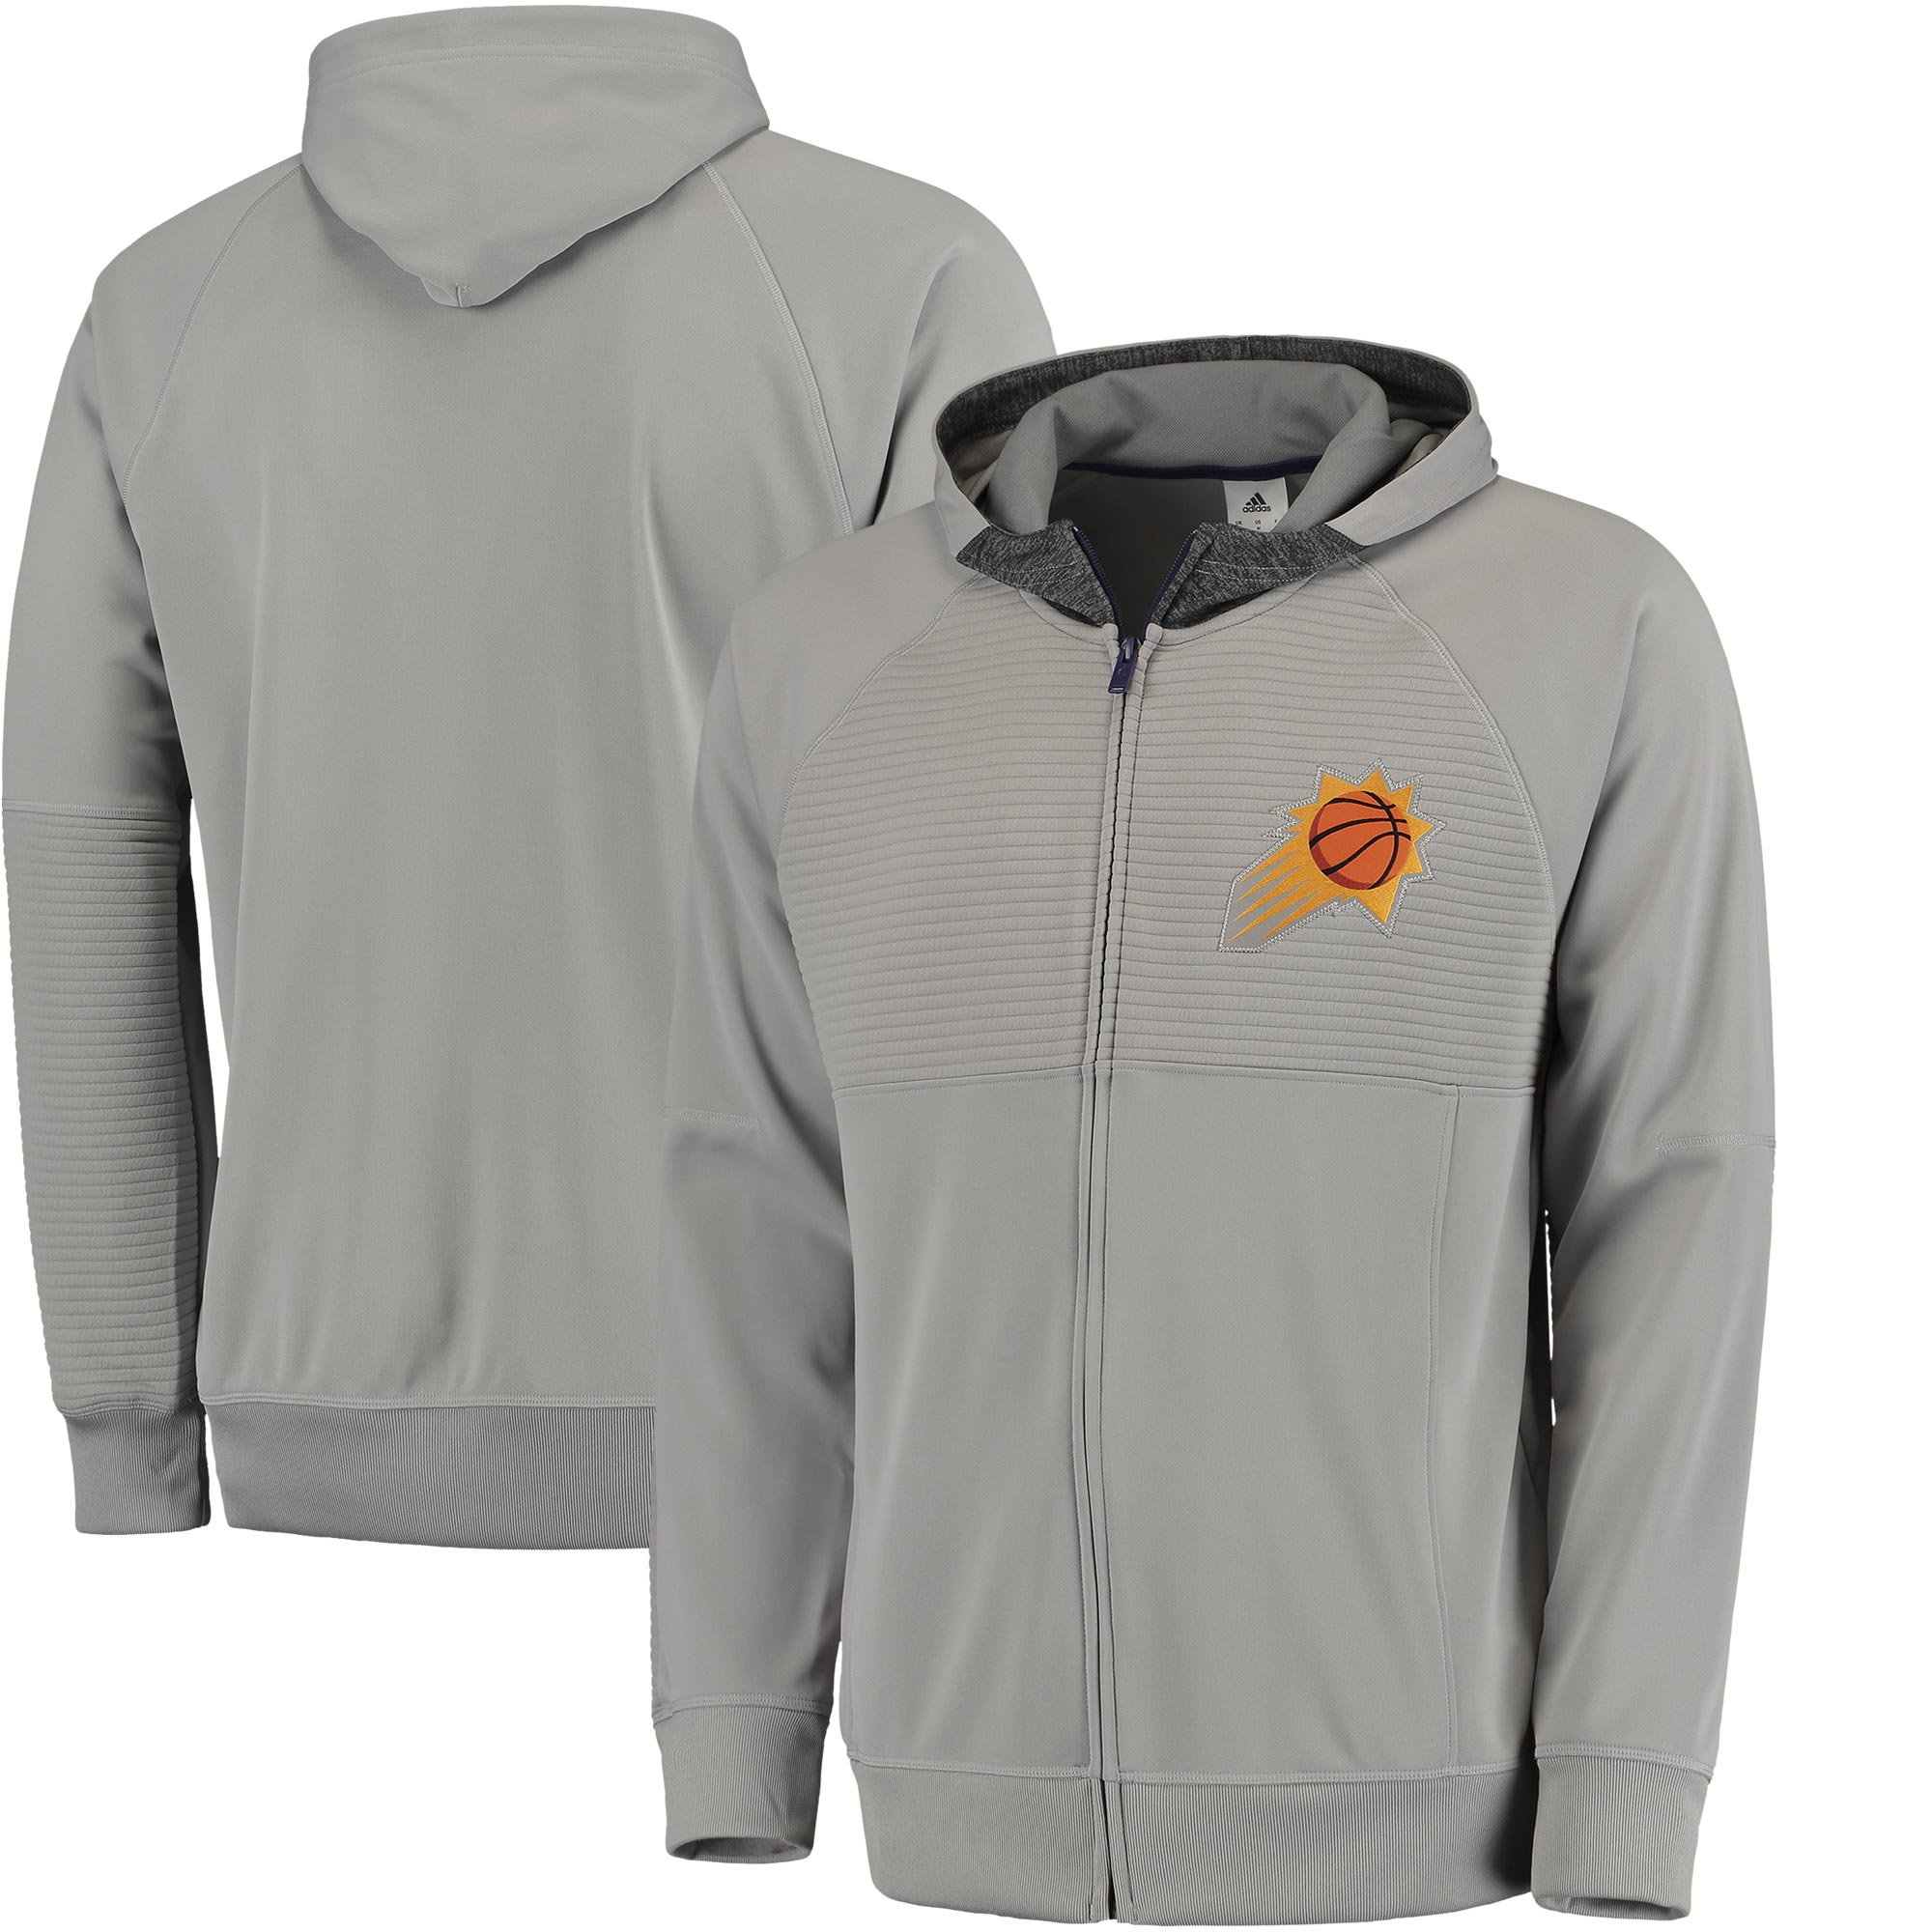 Phoenix Suns adidas 2016 Pre-Game Full-Zip Hooded Jacket - Gray